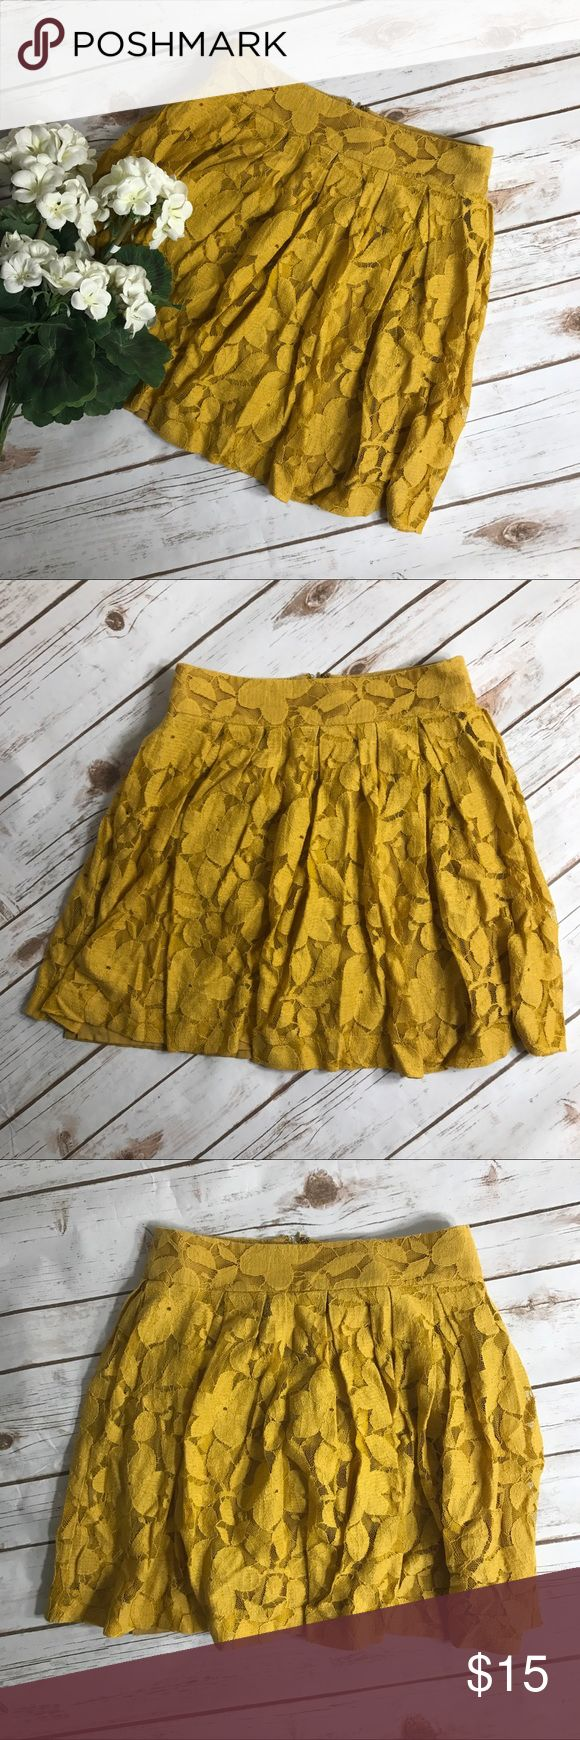 "Women's Anne Taylor Loft Yellow Lace Skirt Eye catching Anne Taylor Loft Yellow Lace Mini Skirt. Has a lining underneath Lace and a back zipper and hook closure. In great condition. See pictures for Skirt material tag. Measurements for flat lay- Waist (25"") Length (16.5"") Like the skirt but not the price? Make me an offer. I consider all offers. anne taylor loft Skirts Mini"